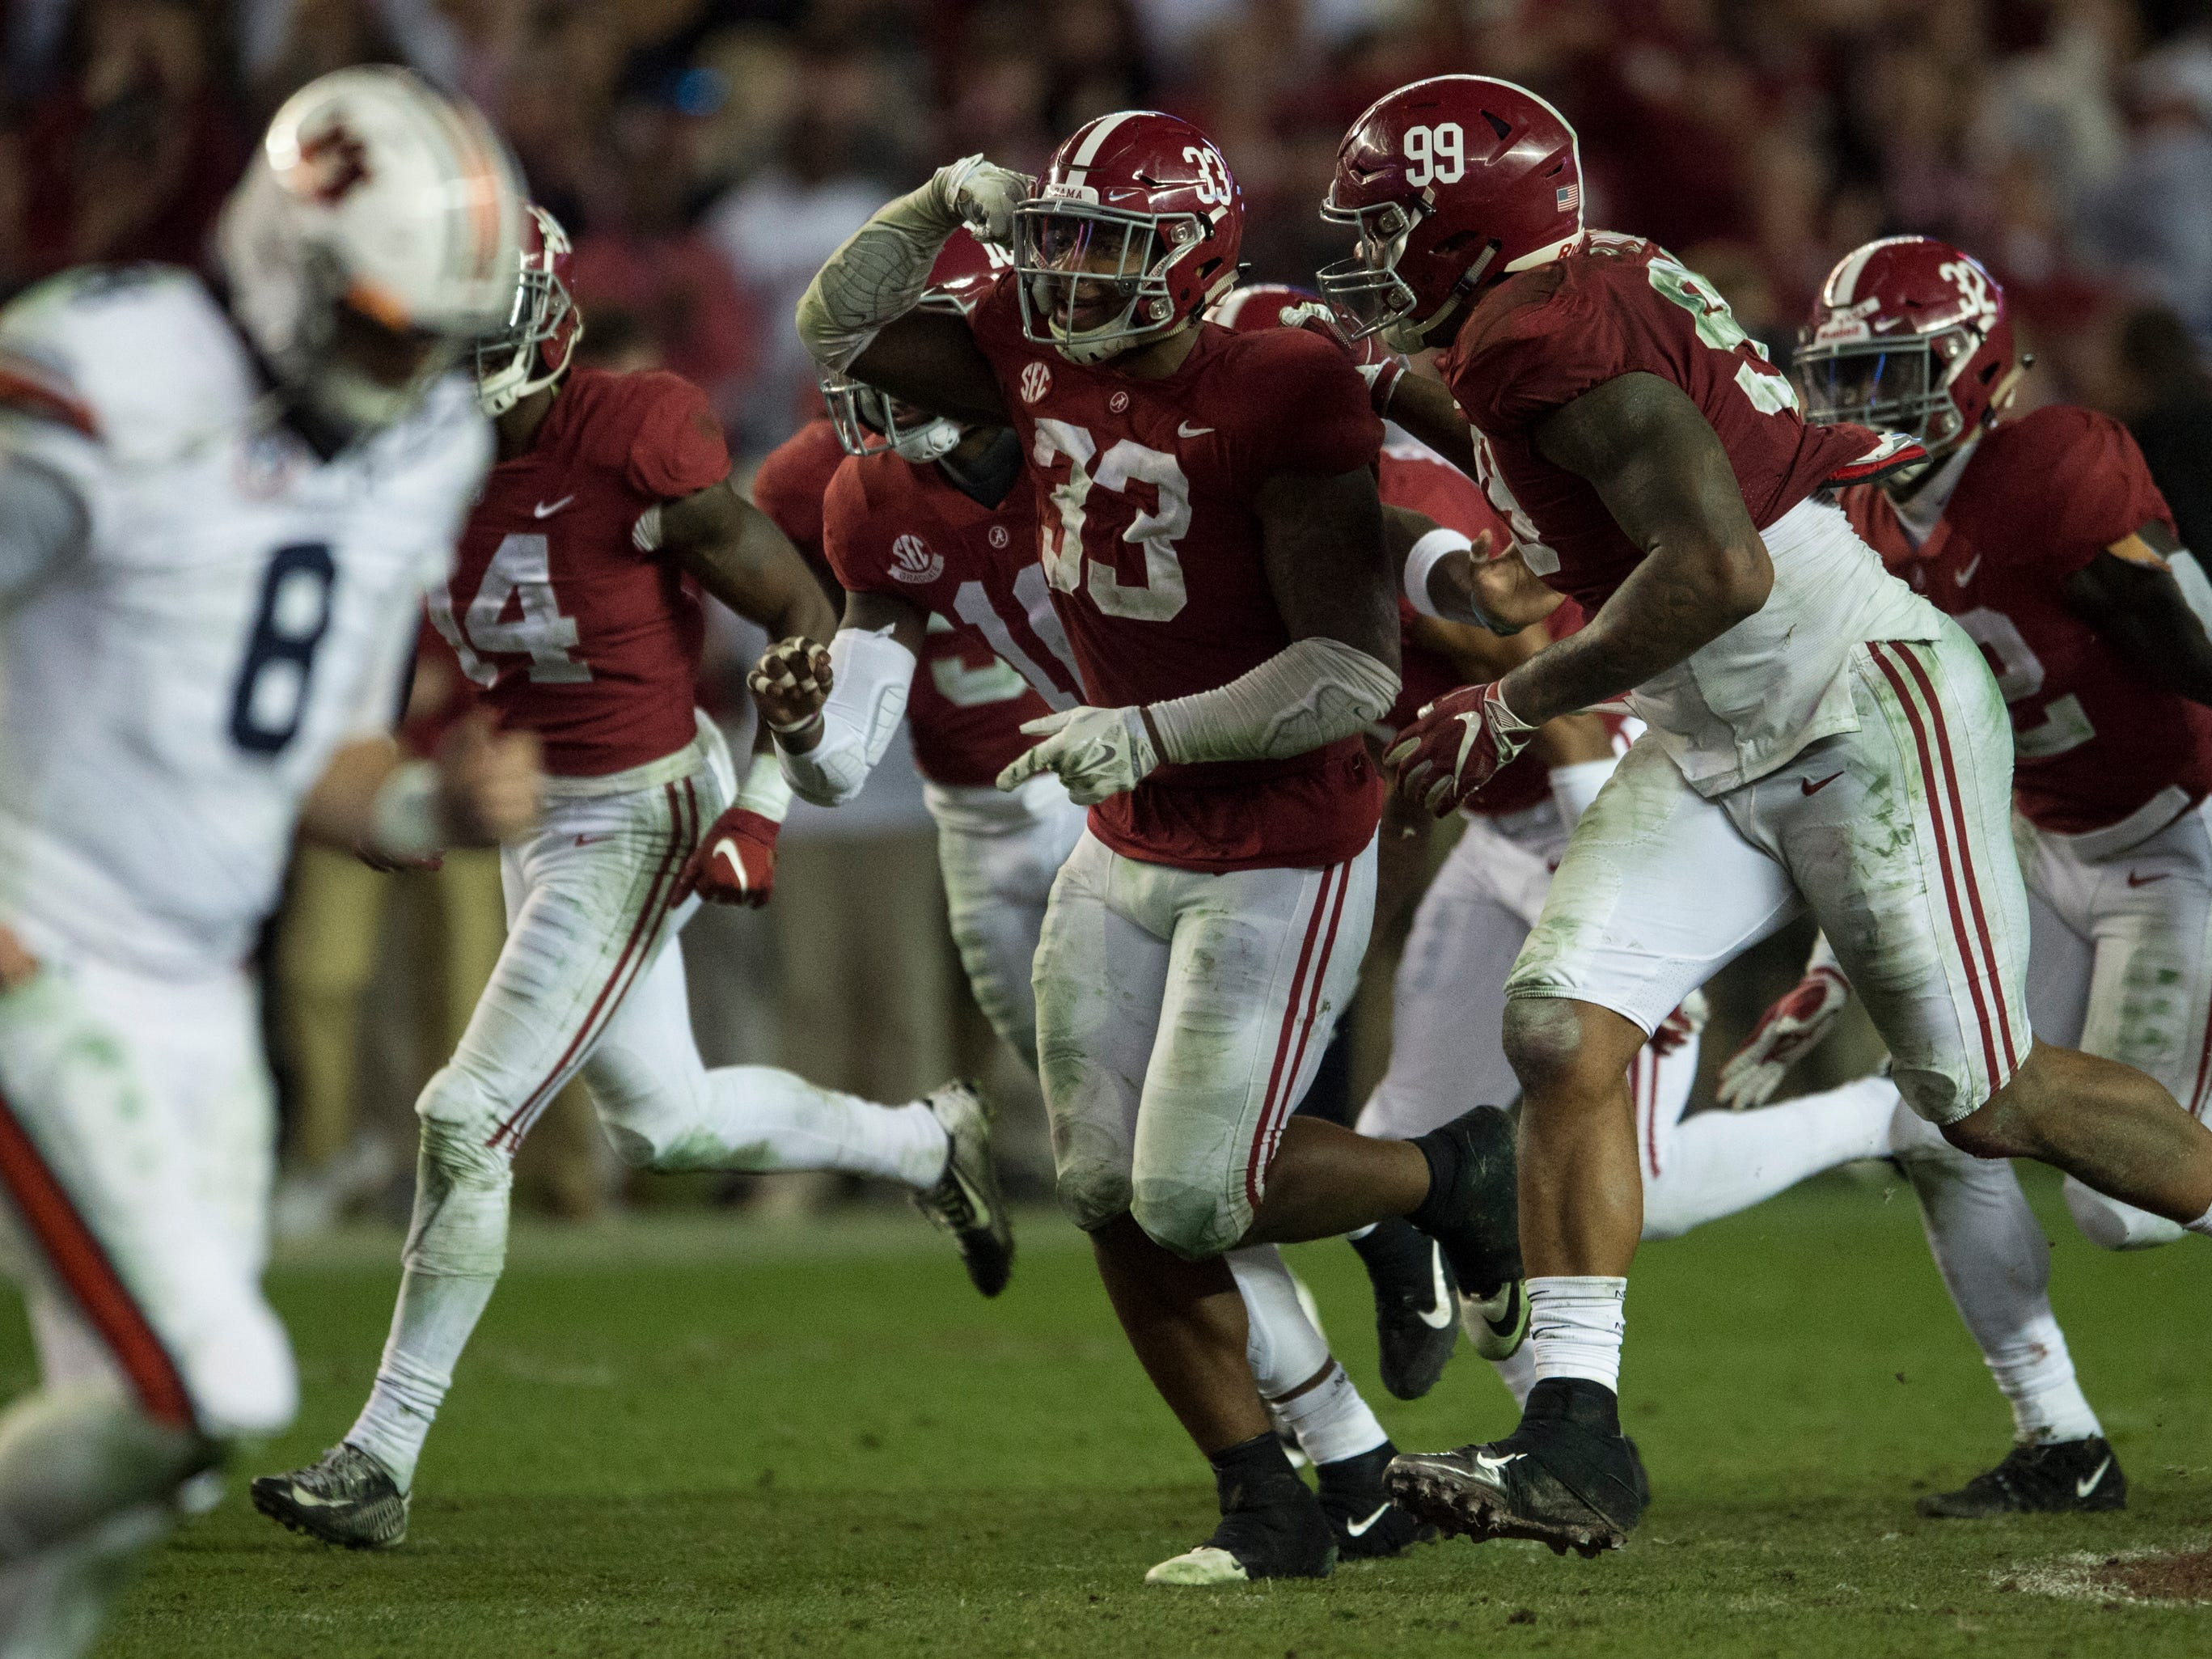 Alabama linebacker Anfernee Jennings (33) celebrates after intercepting the ball as Auburn quarterback Jarrett Stidham (8) runs off the field during the Iron Bowl at Bryant-Denny Stadium in Tuscaloosa, Ala., on Saturday, Nov. 24, 2018. Alabama defeated Auburn 52-21.